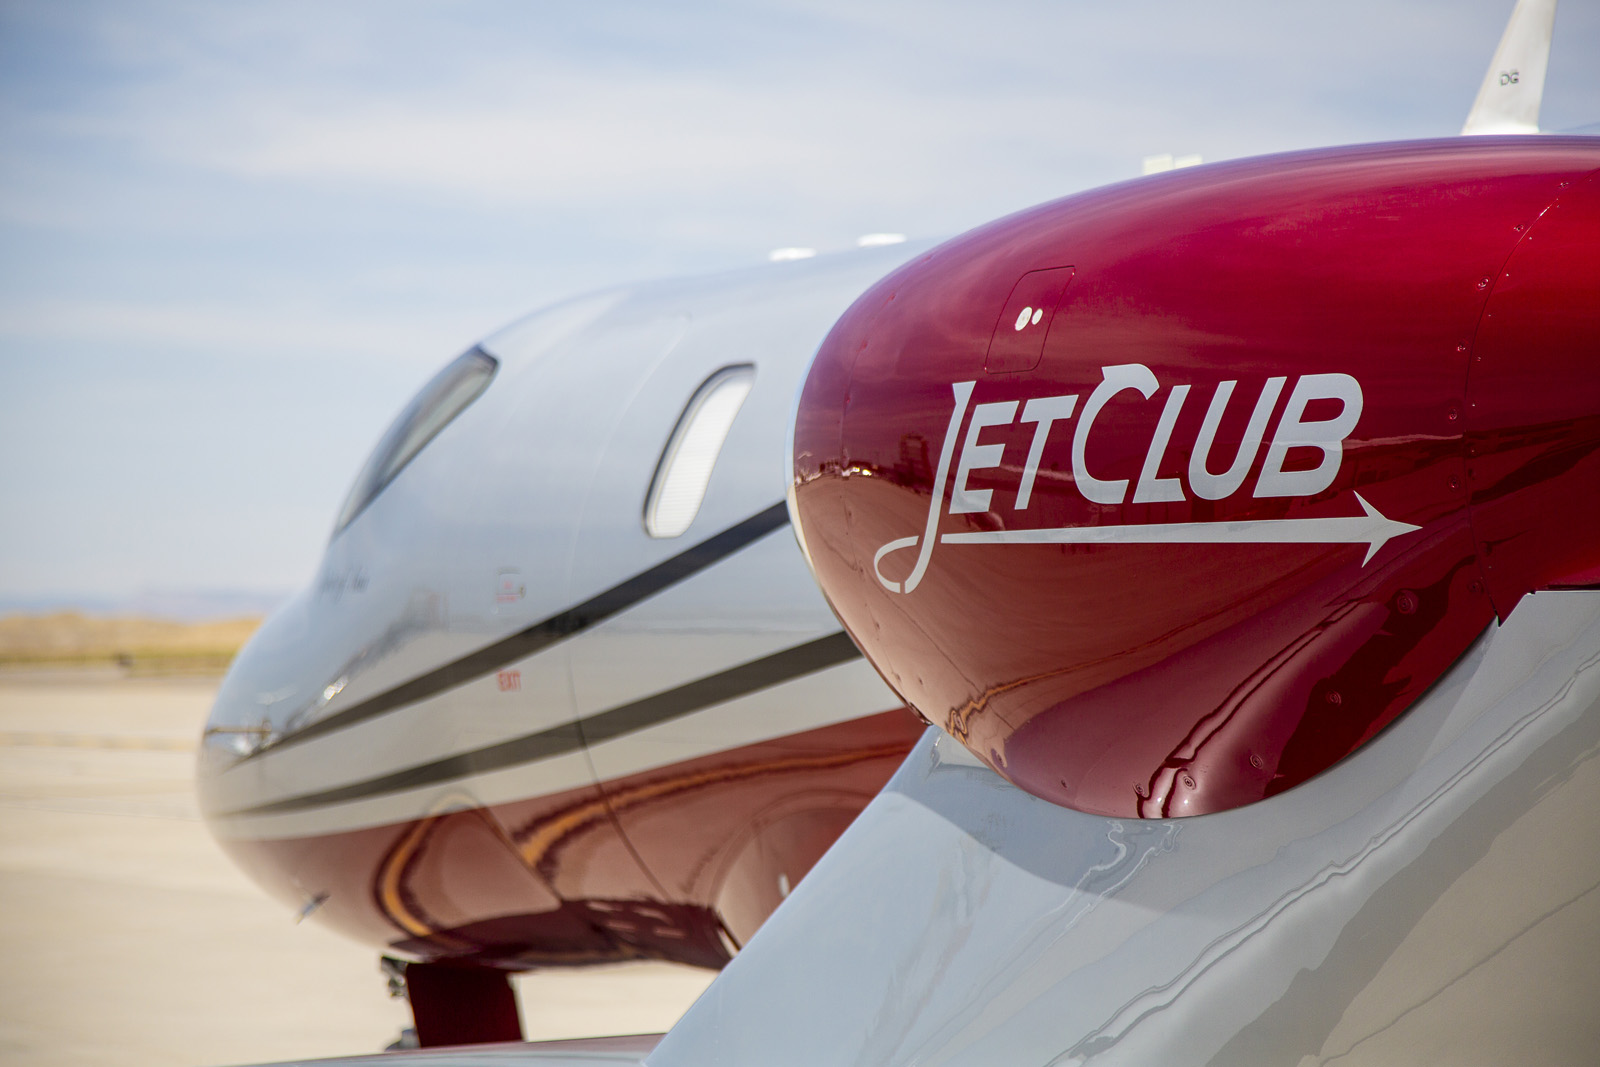 Addition of electric aircraft marks 'leap forward' in sustainability goals – JetClub CEO